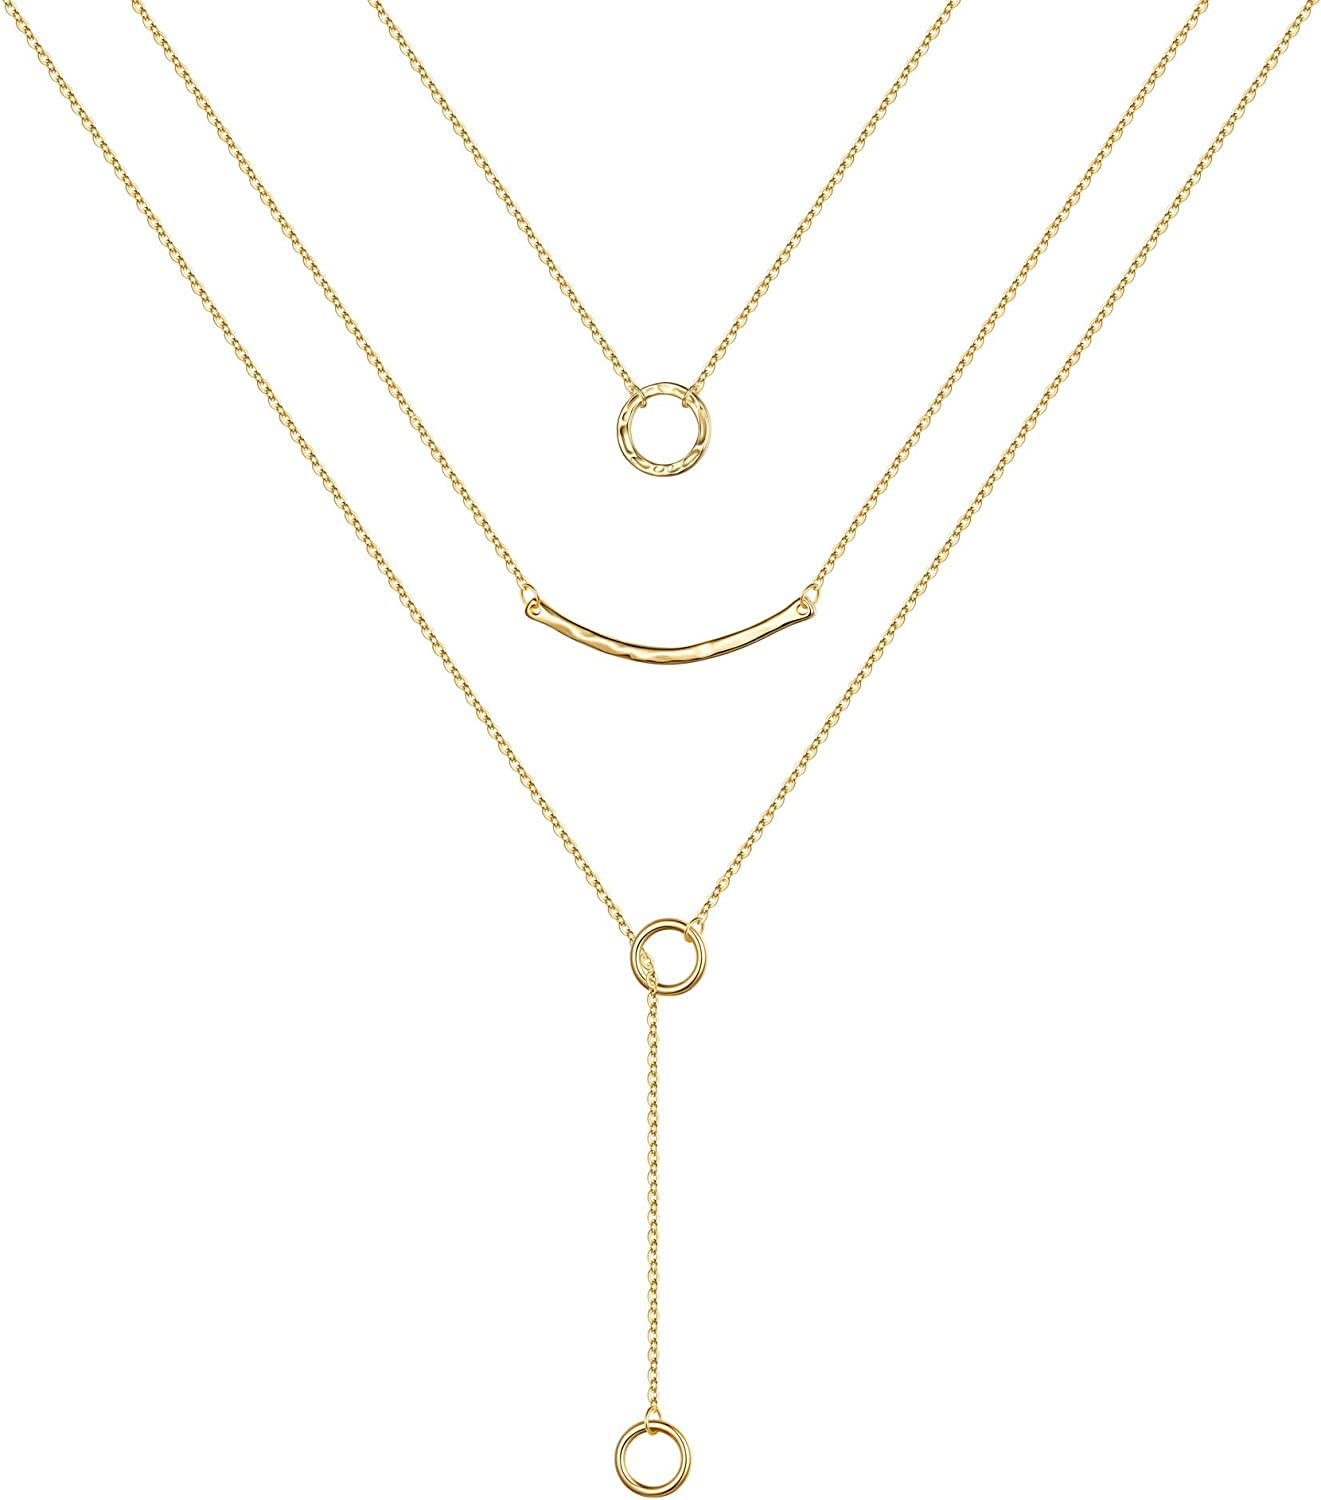 Turandoss Gold Layered Necklaces for Women - 14K Gold Plated Handmade Multilayer Bar Pearls Coin Disc Moon Butterfly Medallion Adjustable Dainty Layered Choker Necklaces for Women Jewelry